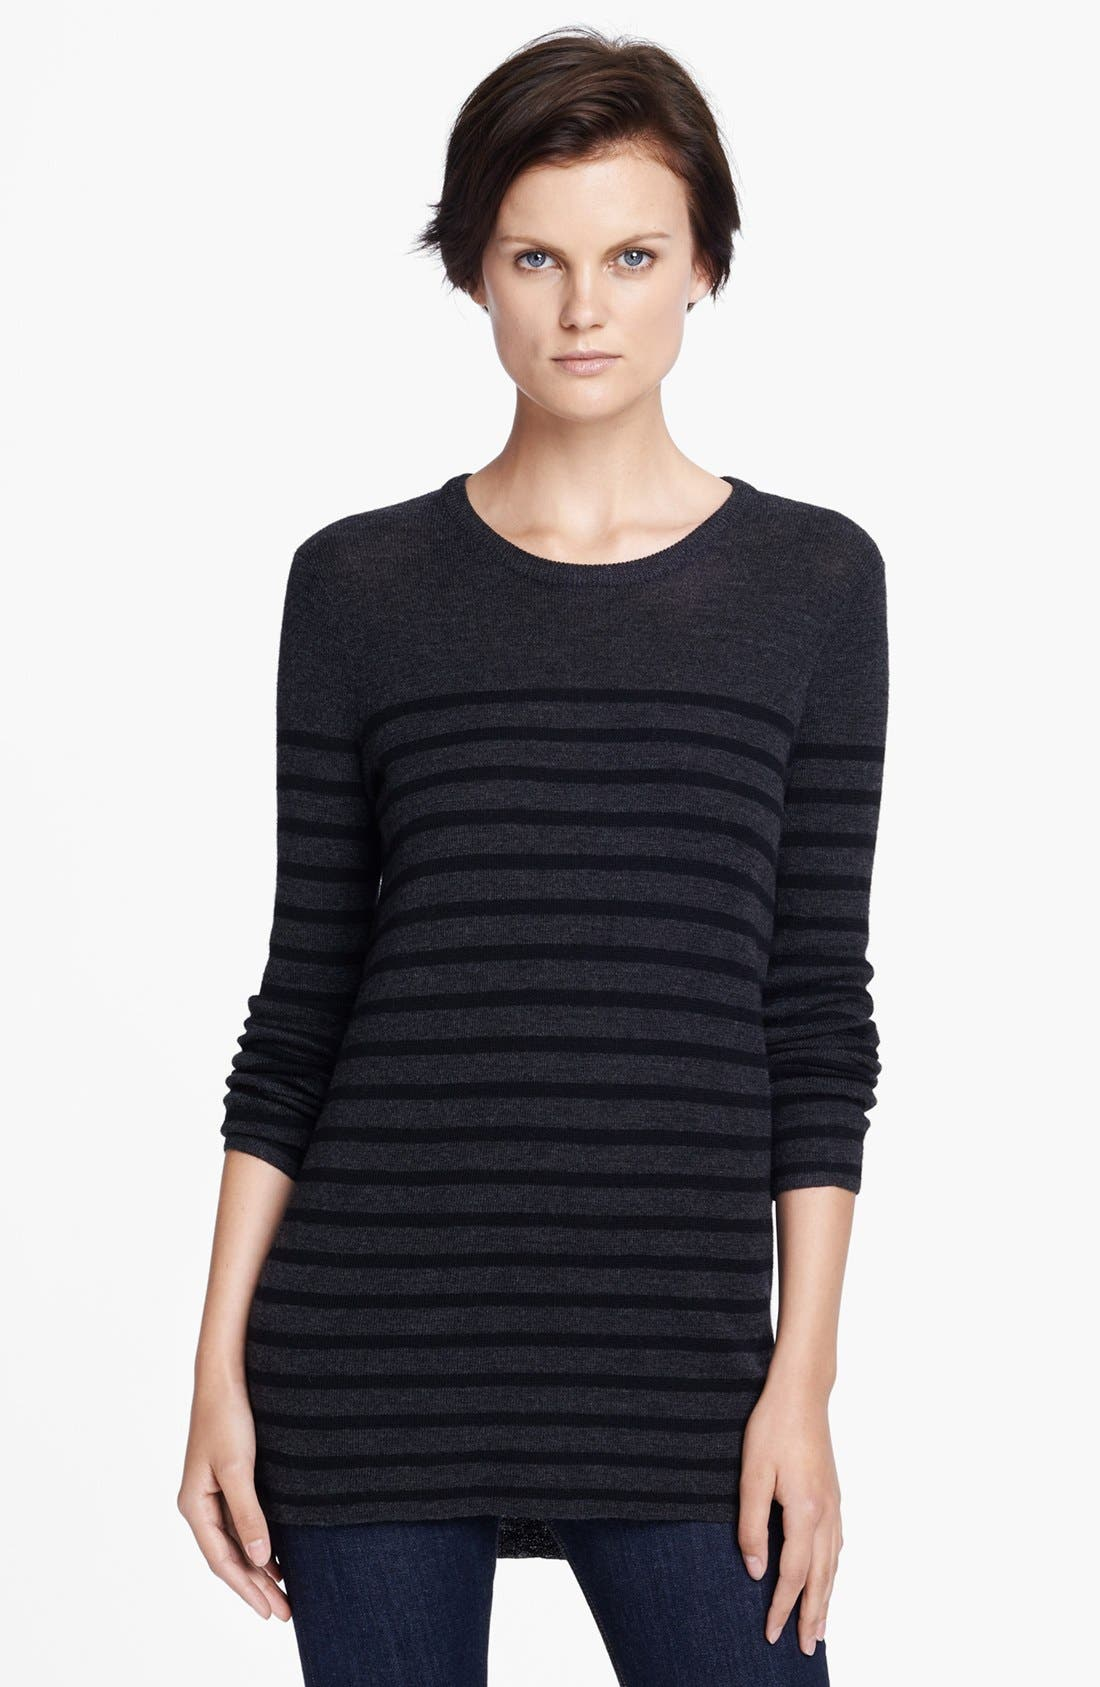 Alternate Image 1 Selected - rag & bone 'Gigi' Stripe Merino Wool Tunic